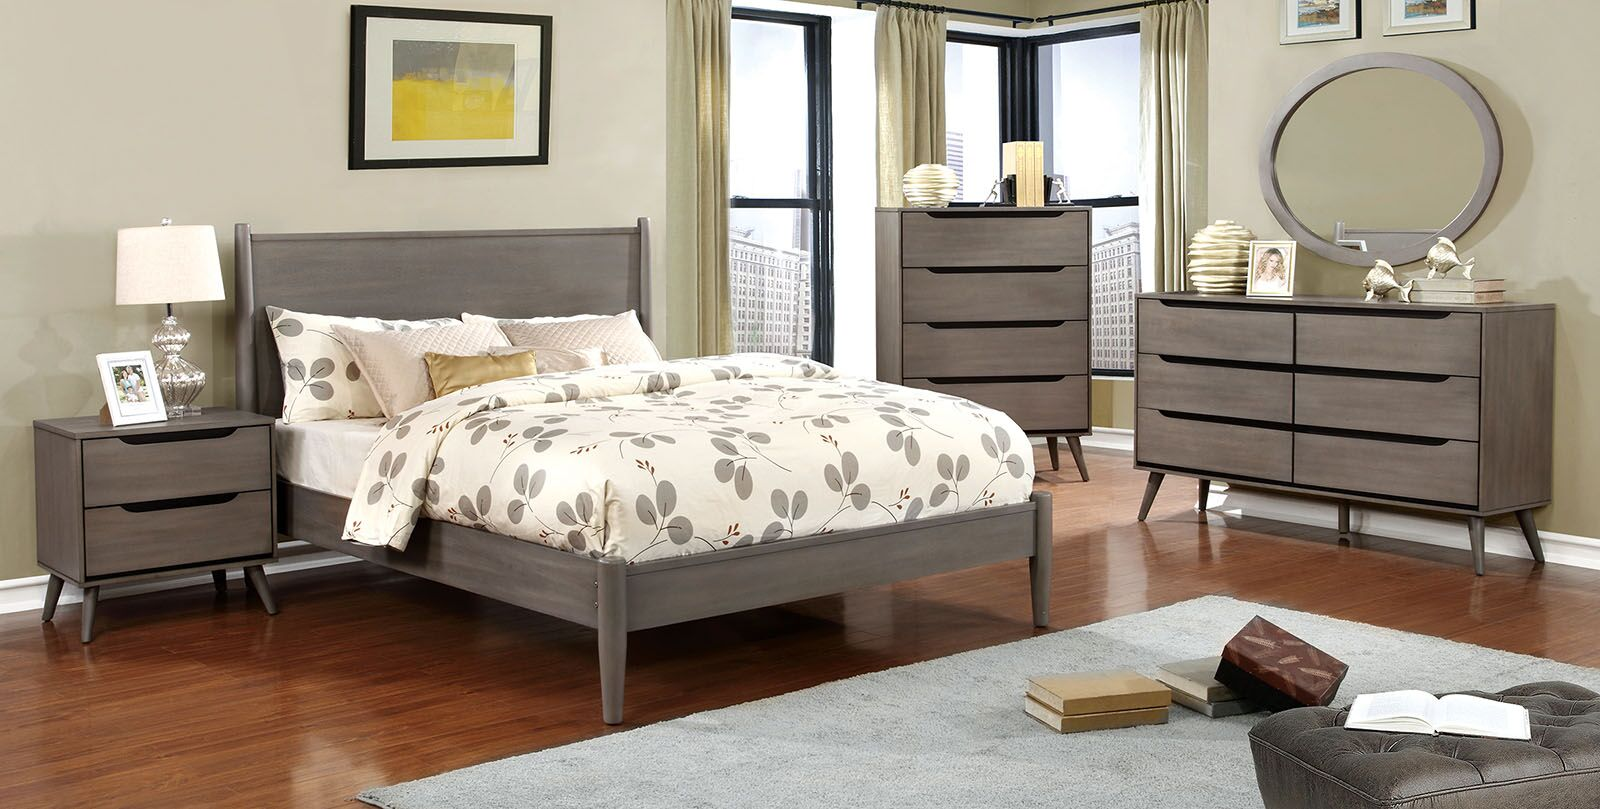 Eckles Platform Bed Size: King, Color: Gray